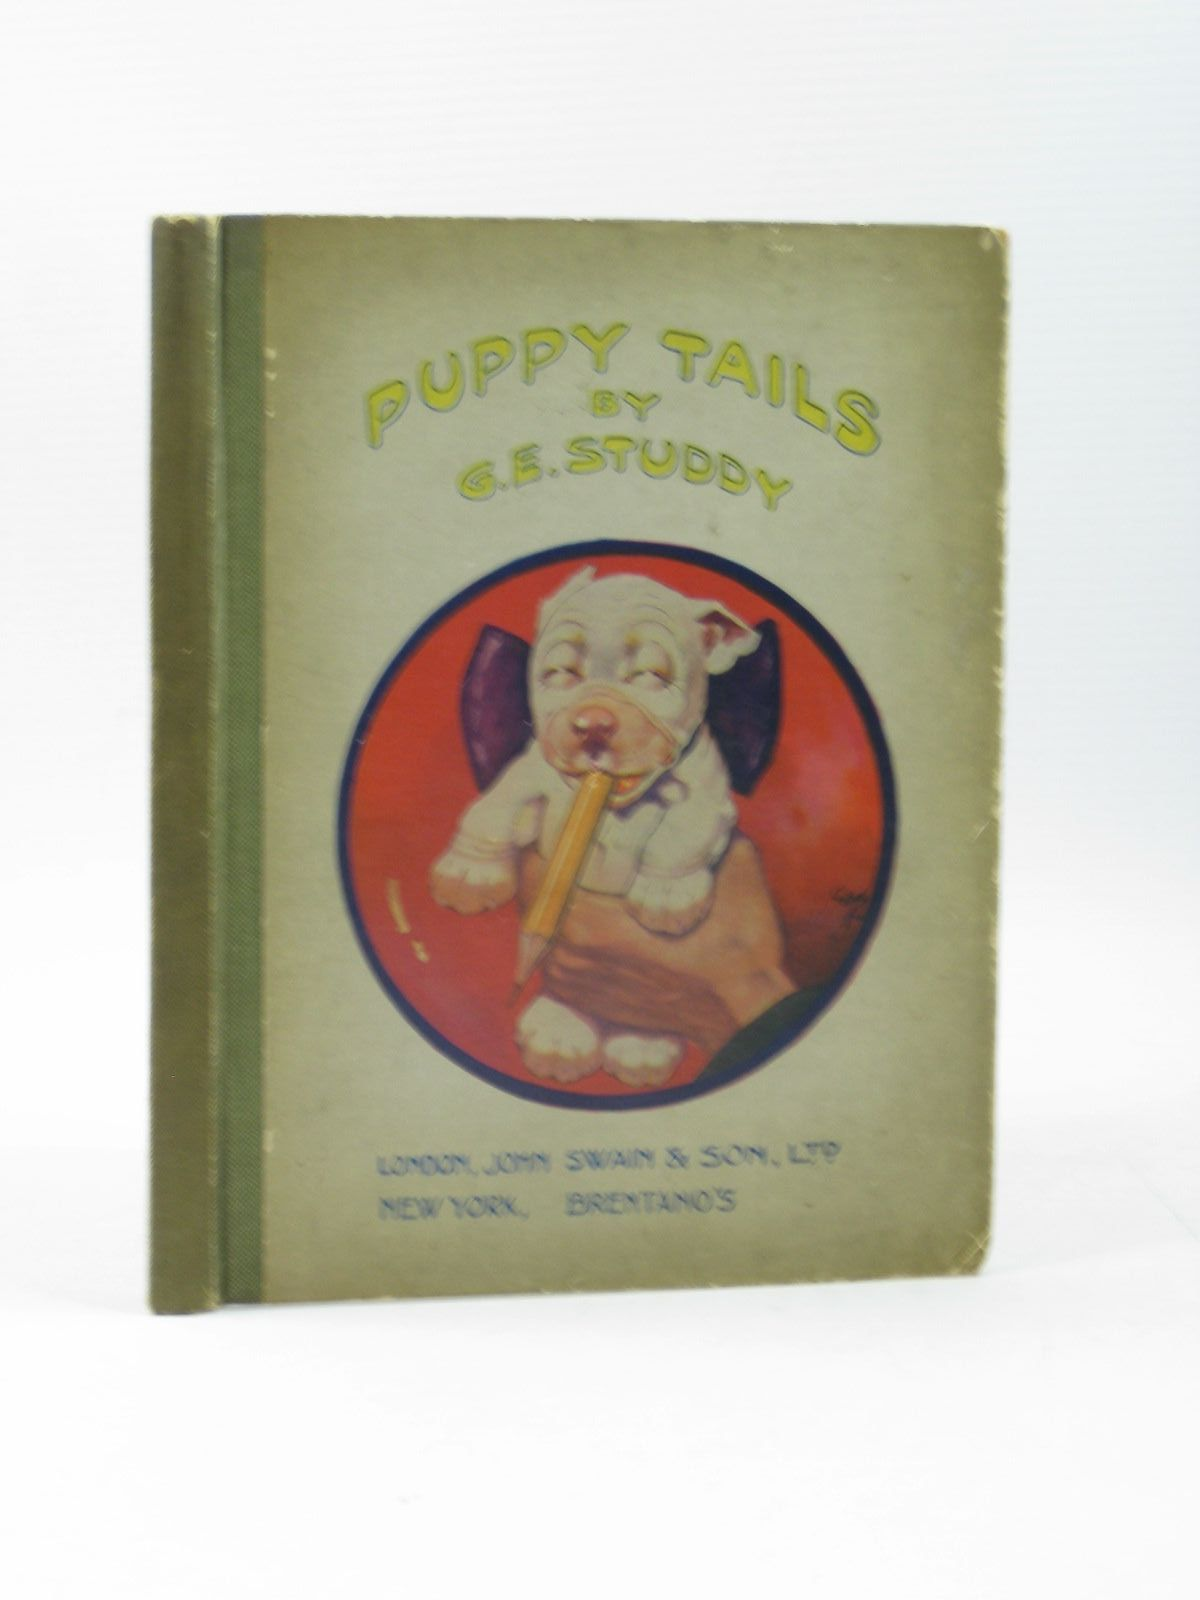 Photo of PUPPY TAILS written by Jellicoe, George illustrated by Studdy, G.E. published by John Swain & Son Limited, Brentano's (STOCK CODE: 1313203)  for sale by Stella & Rose's Books